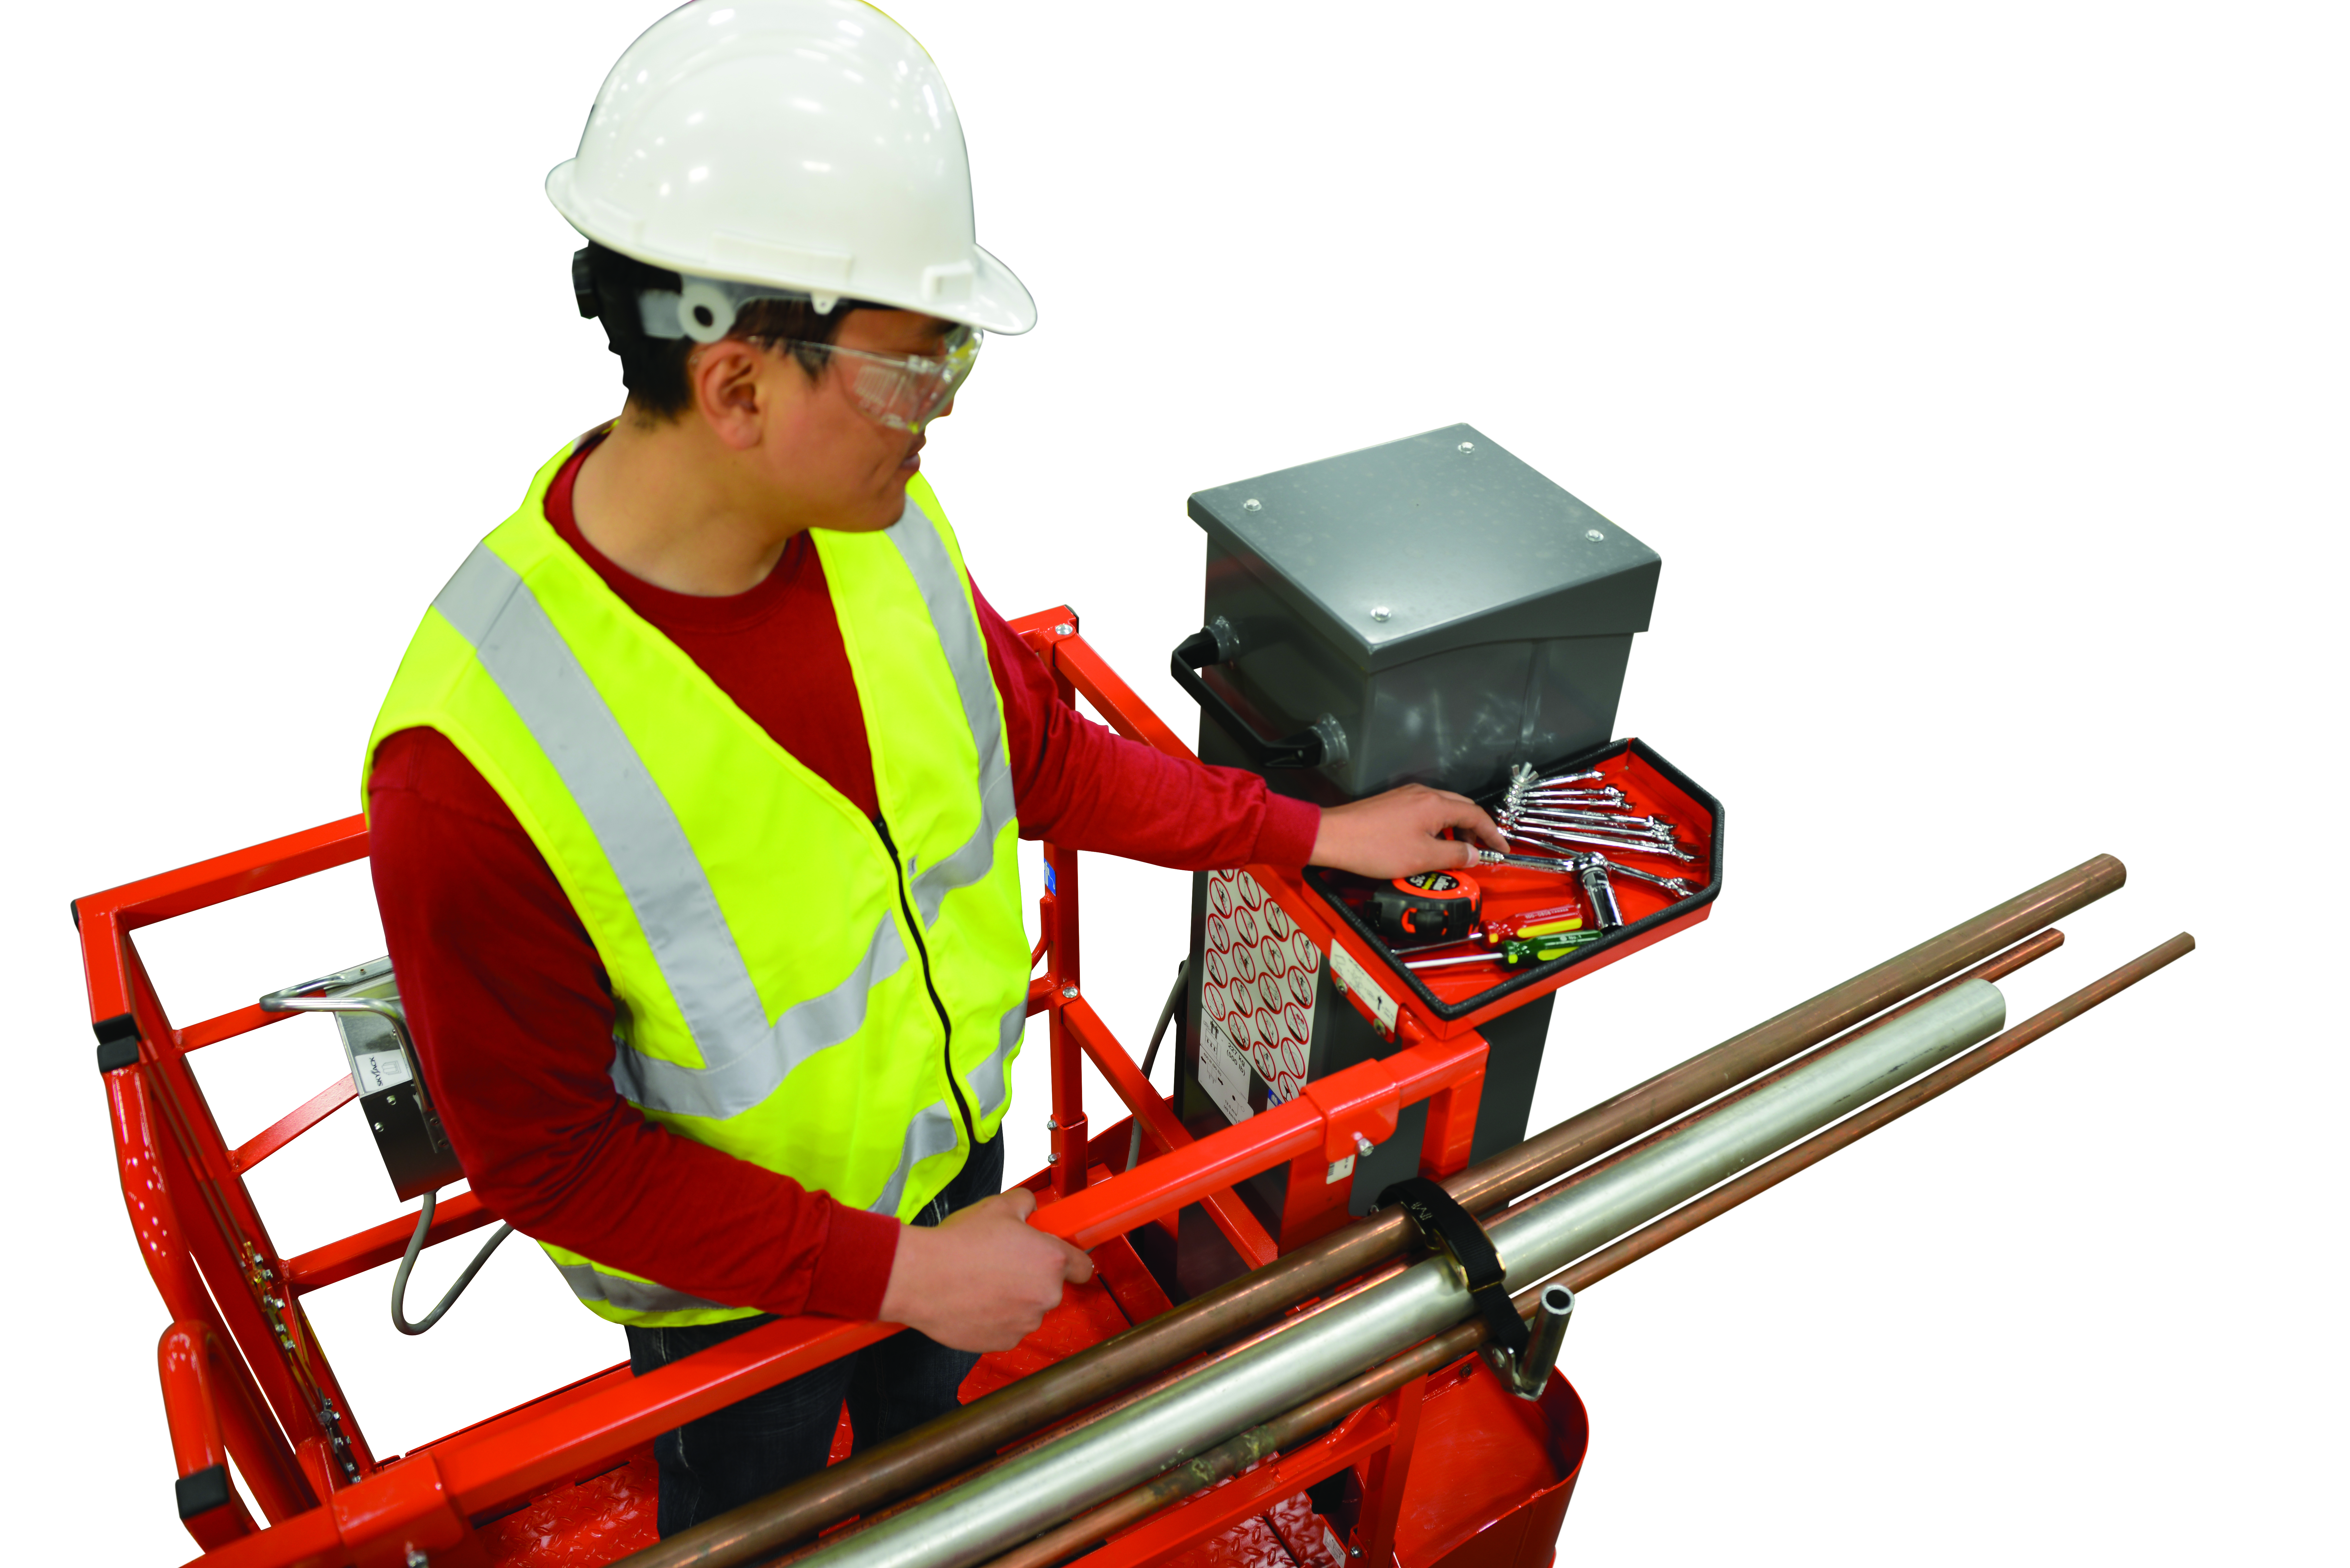 tools are engineered to minimize manual work, deliver increased efficiency, and improve working performance